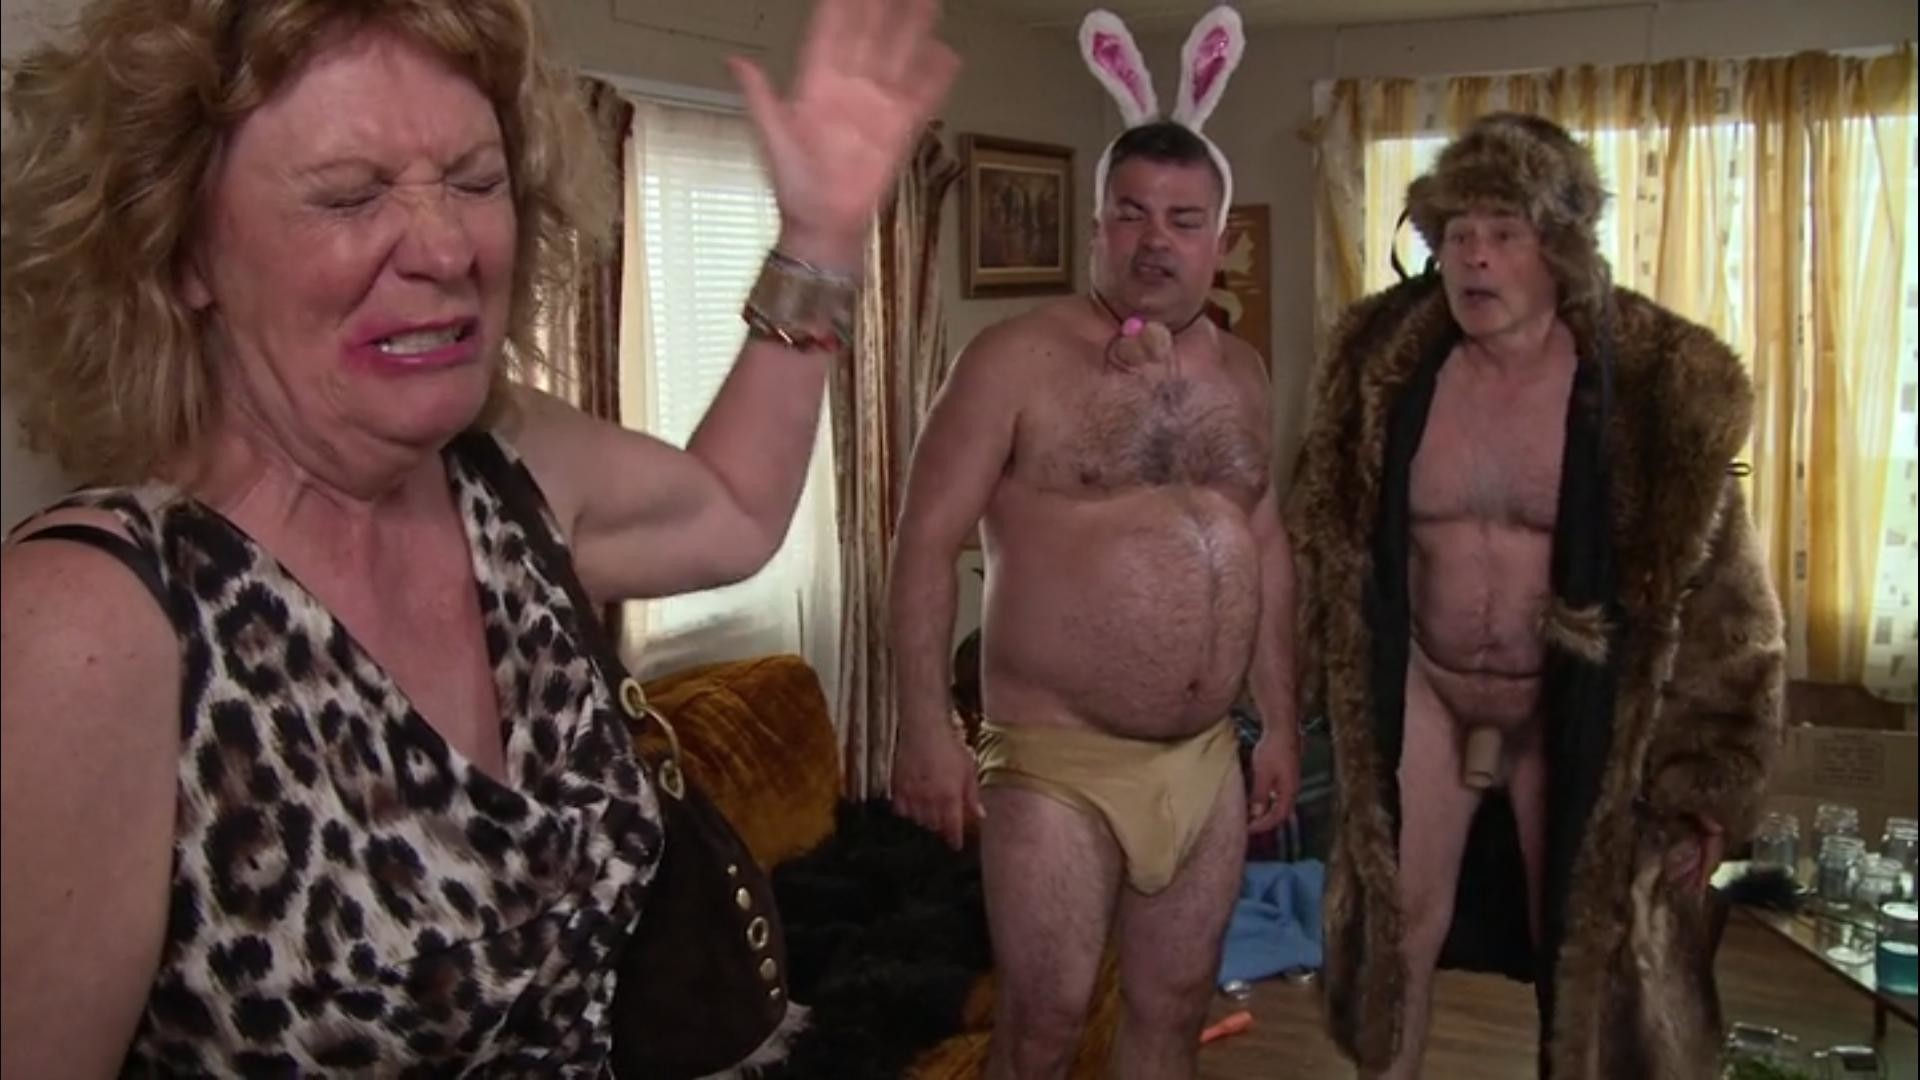 Trailer Park Boys in one image …